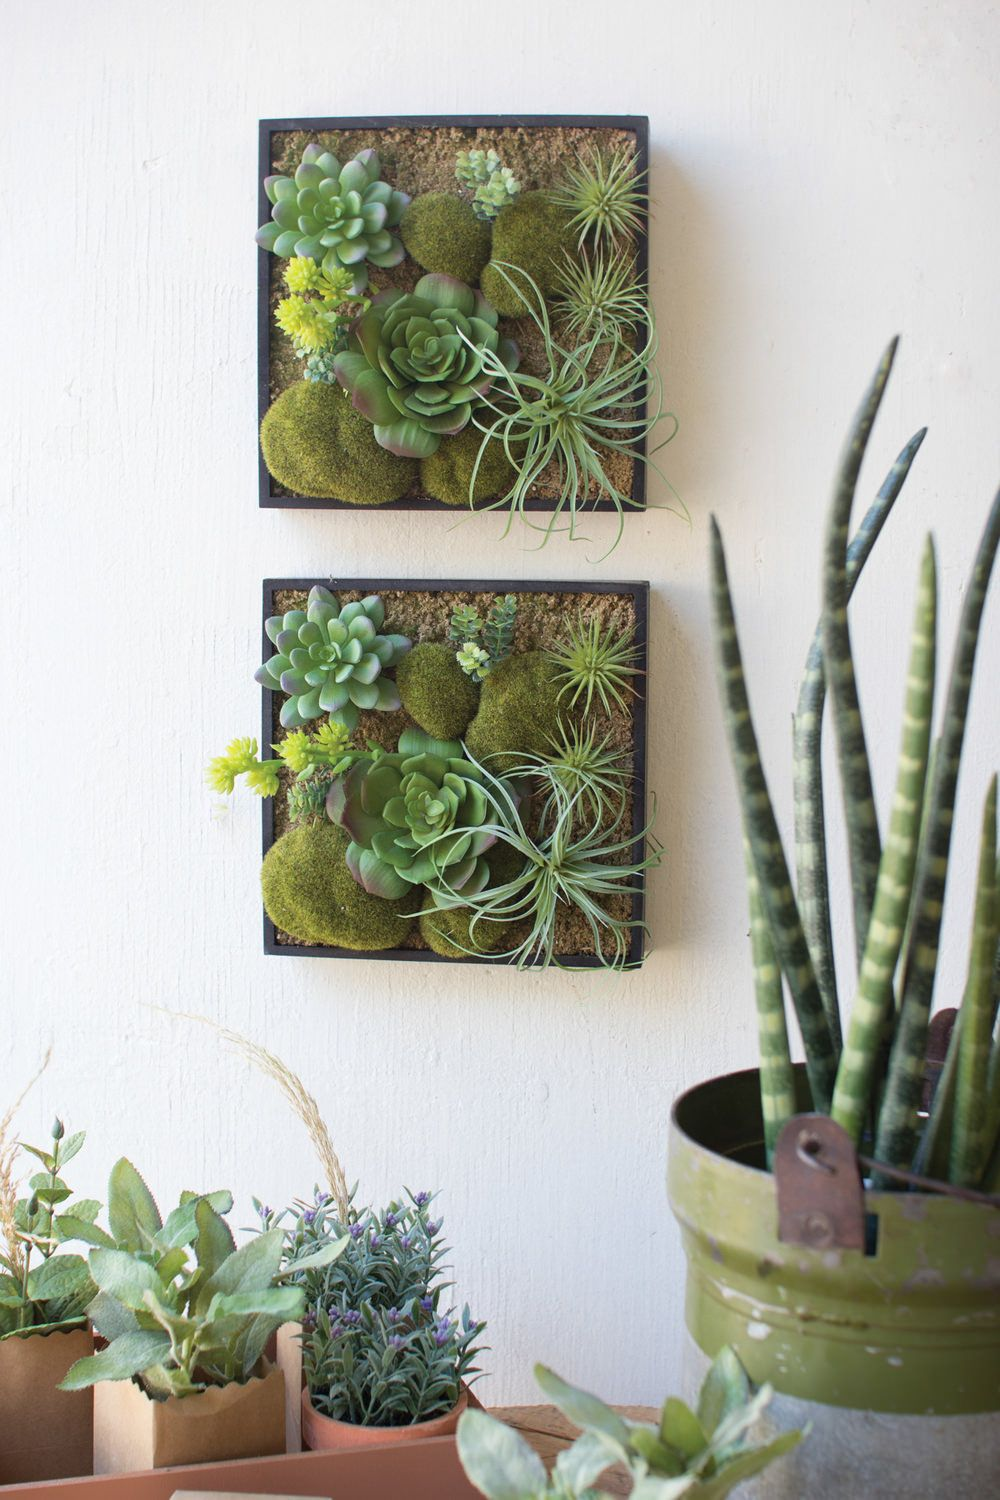 Wall Hanging Succulent Garden Hom Furniture Succulent Wall Art Succulent Wall Hanging Hanging Succulents